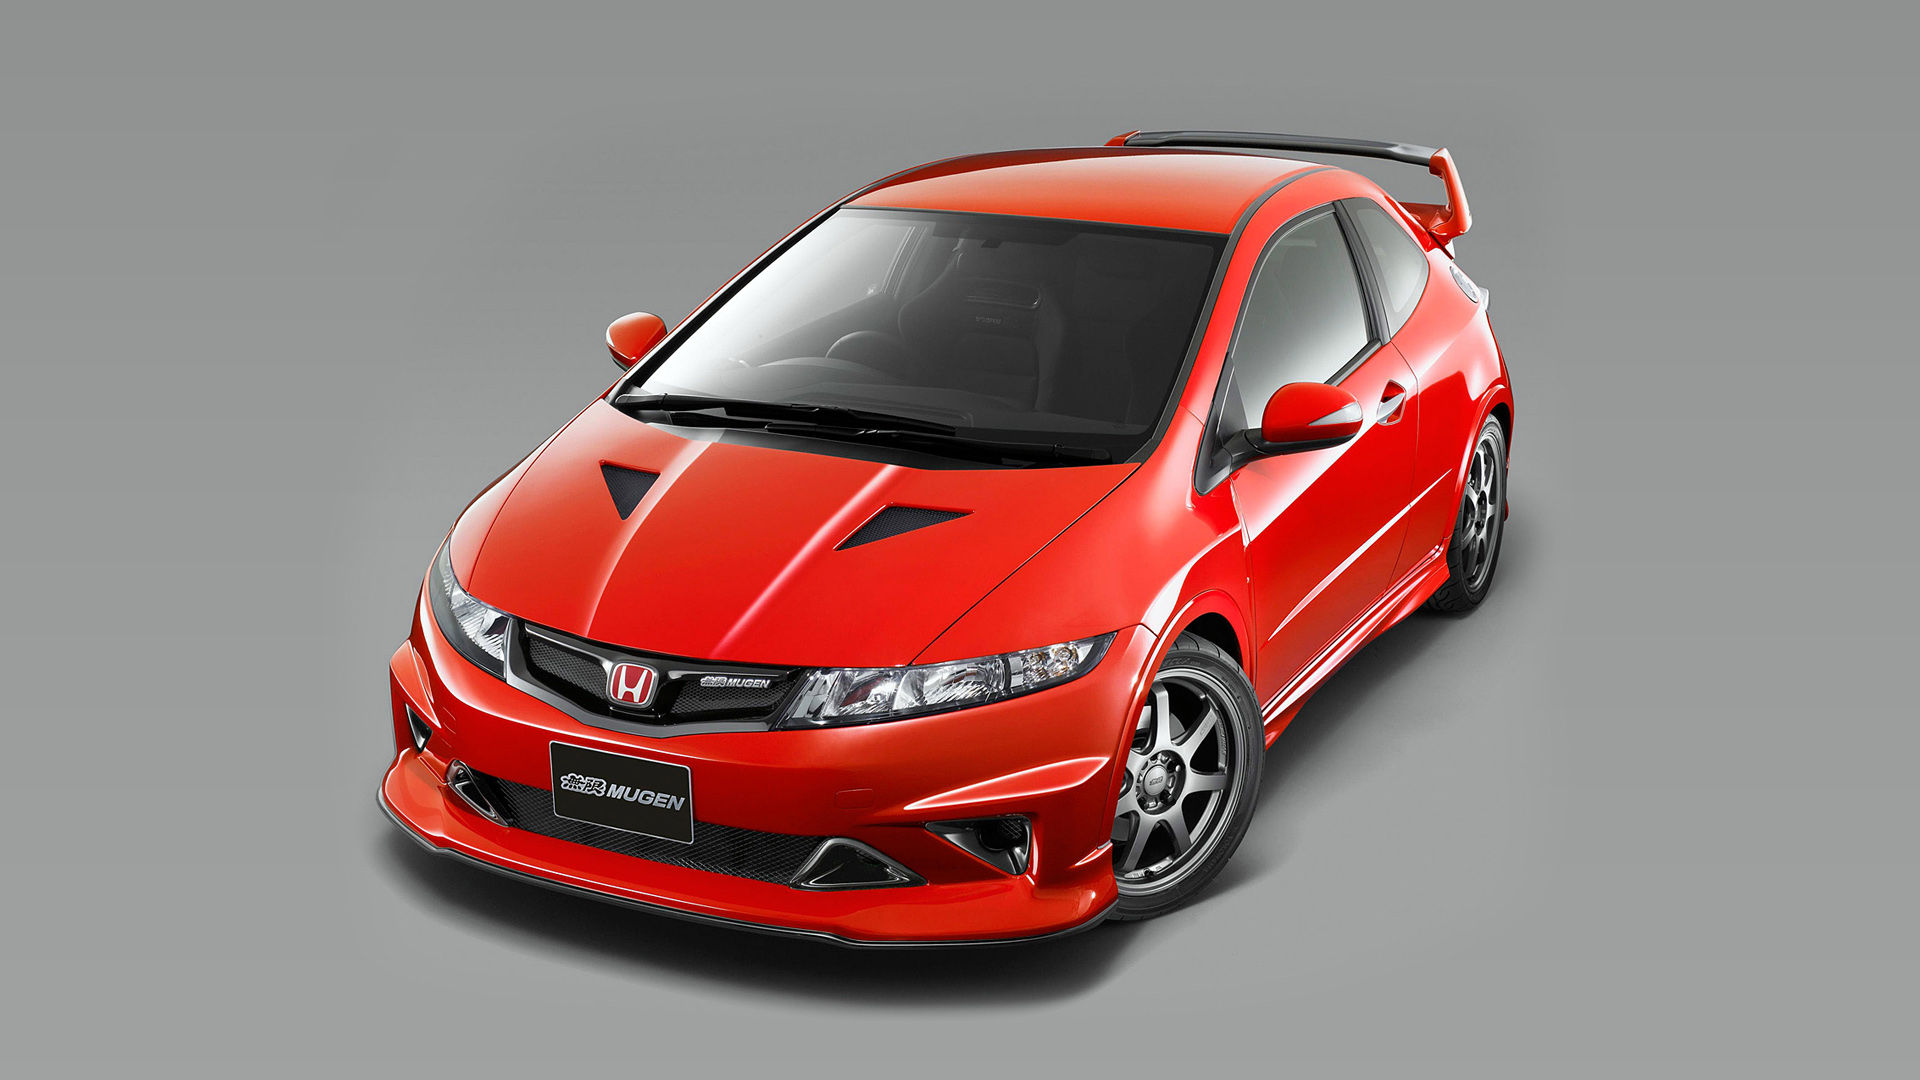 2009 Honda Civic Type R Mugen Prototype